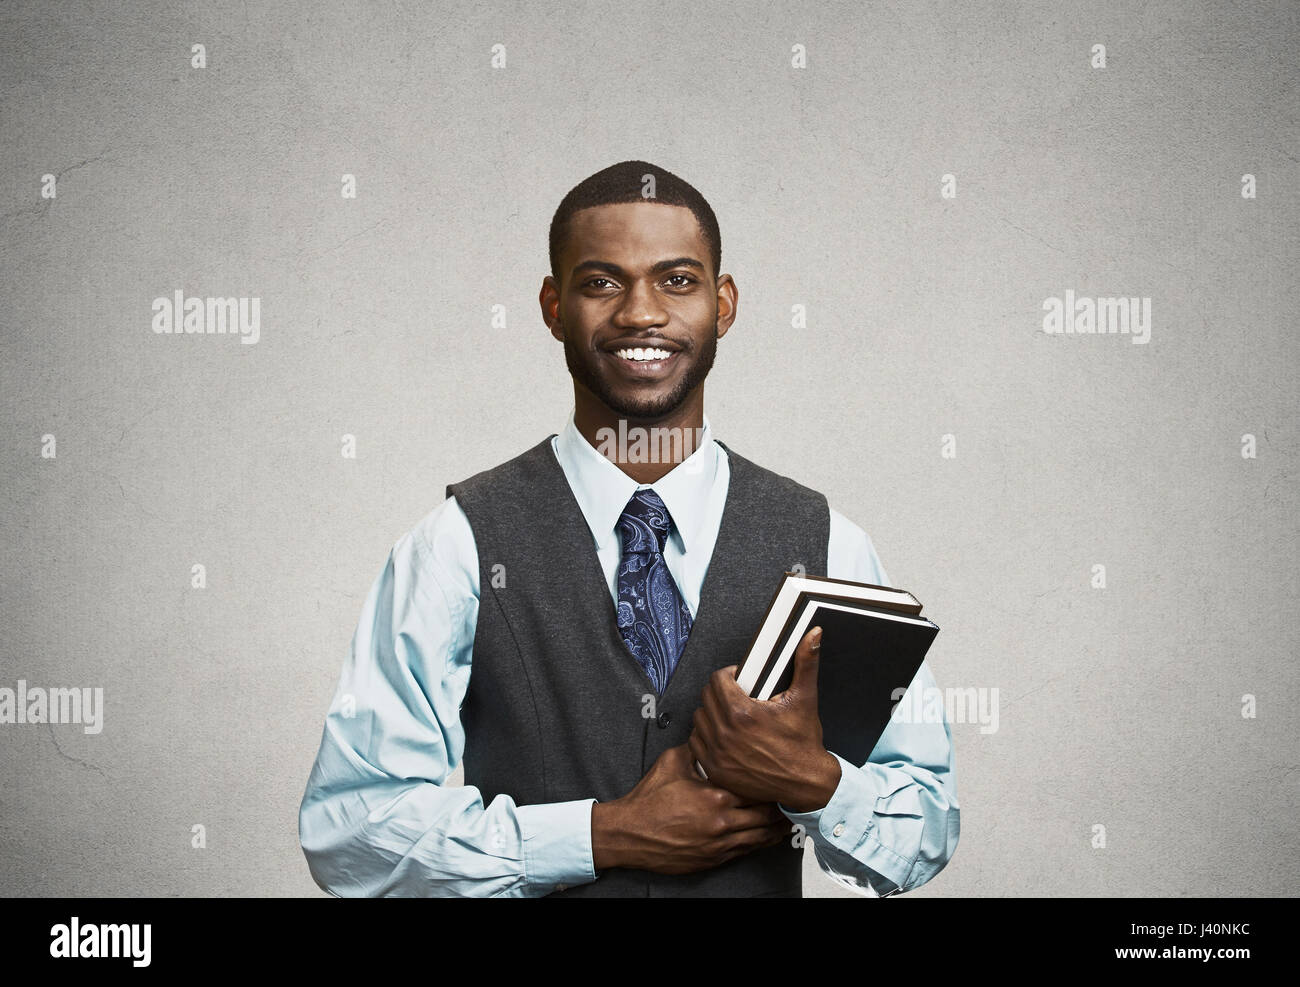 Closeup young smart, happy, smiling handsome man holding books, prepared, ready to ace his exam test finals, isolated - Stock Image